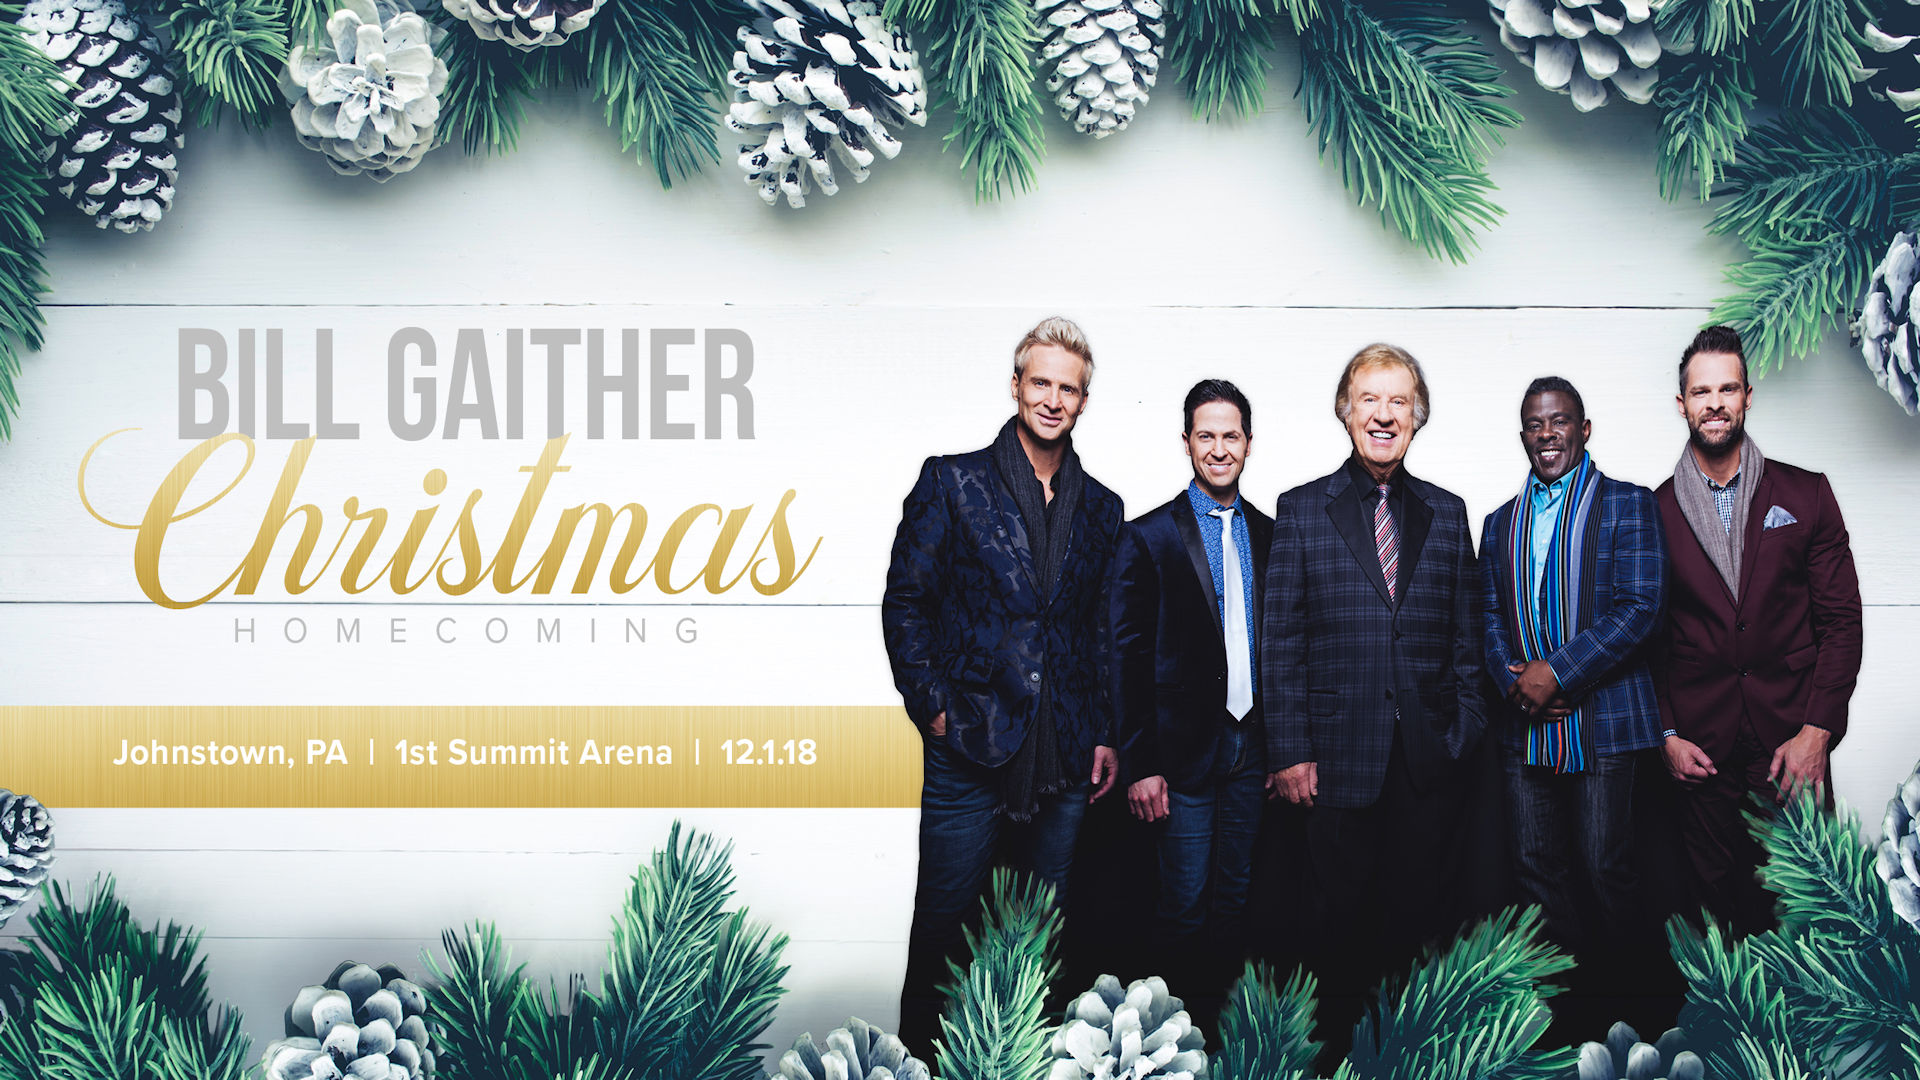 gaither christmas homecoming 1st summit arena cambria county war memorial